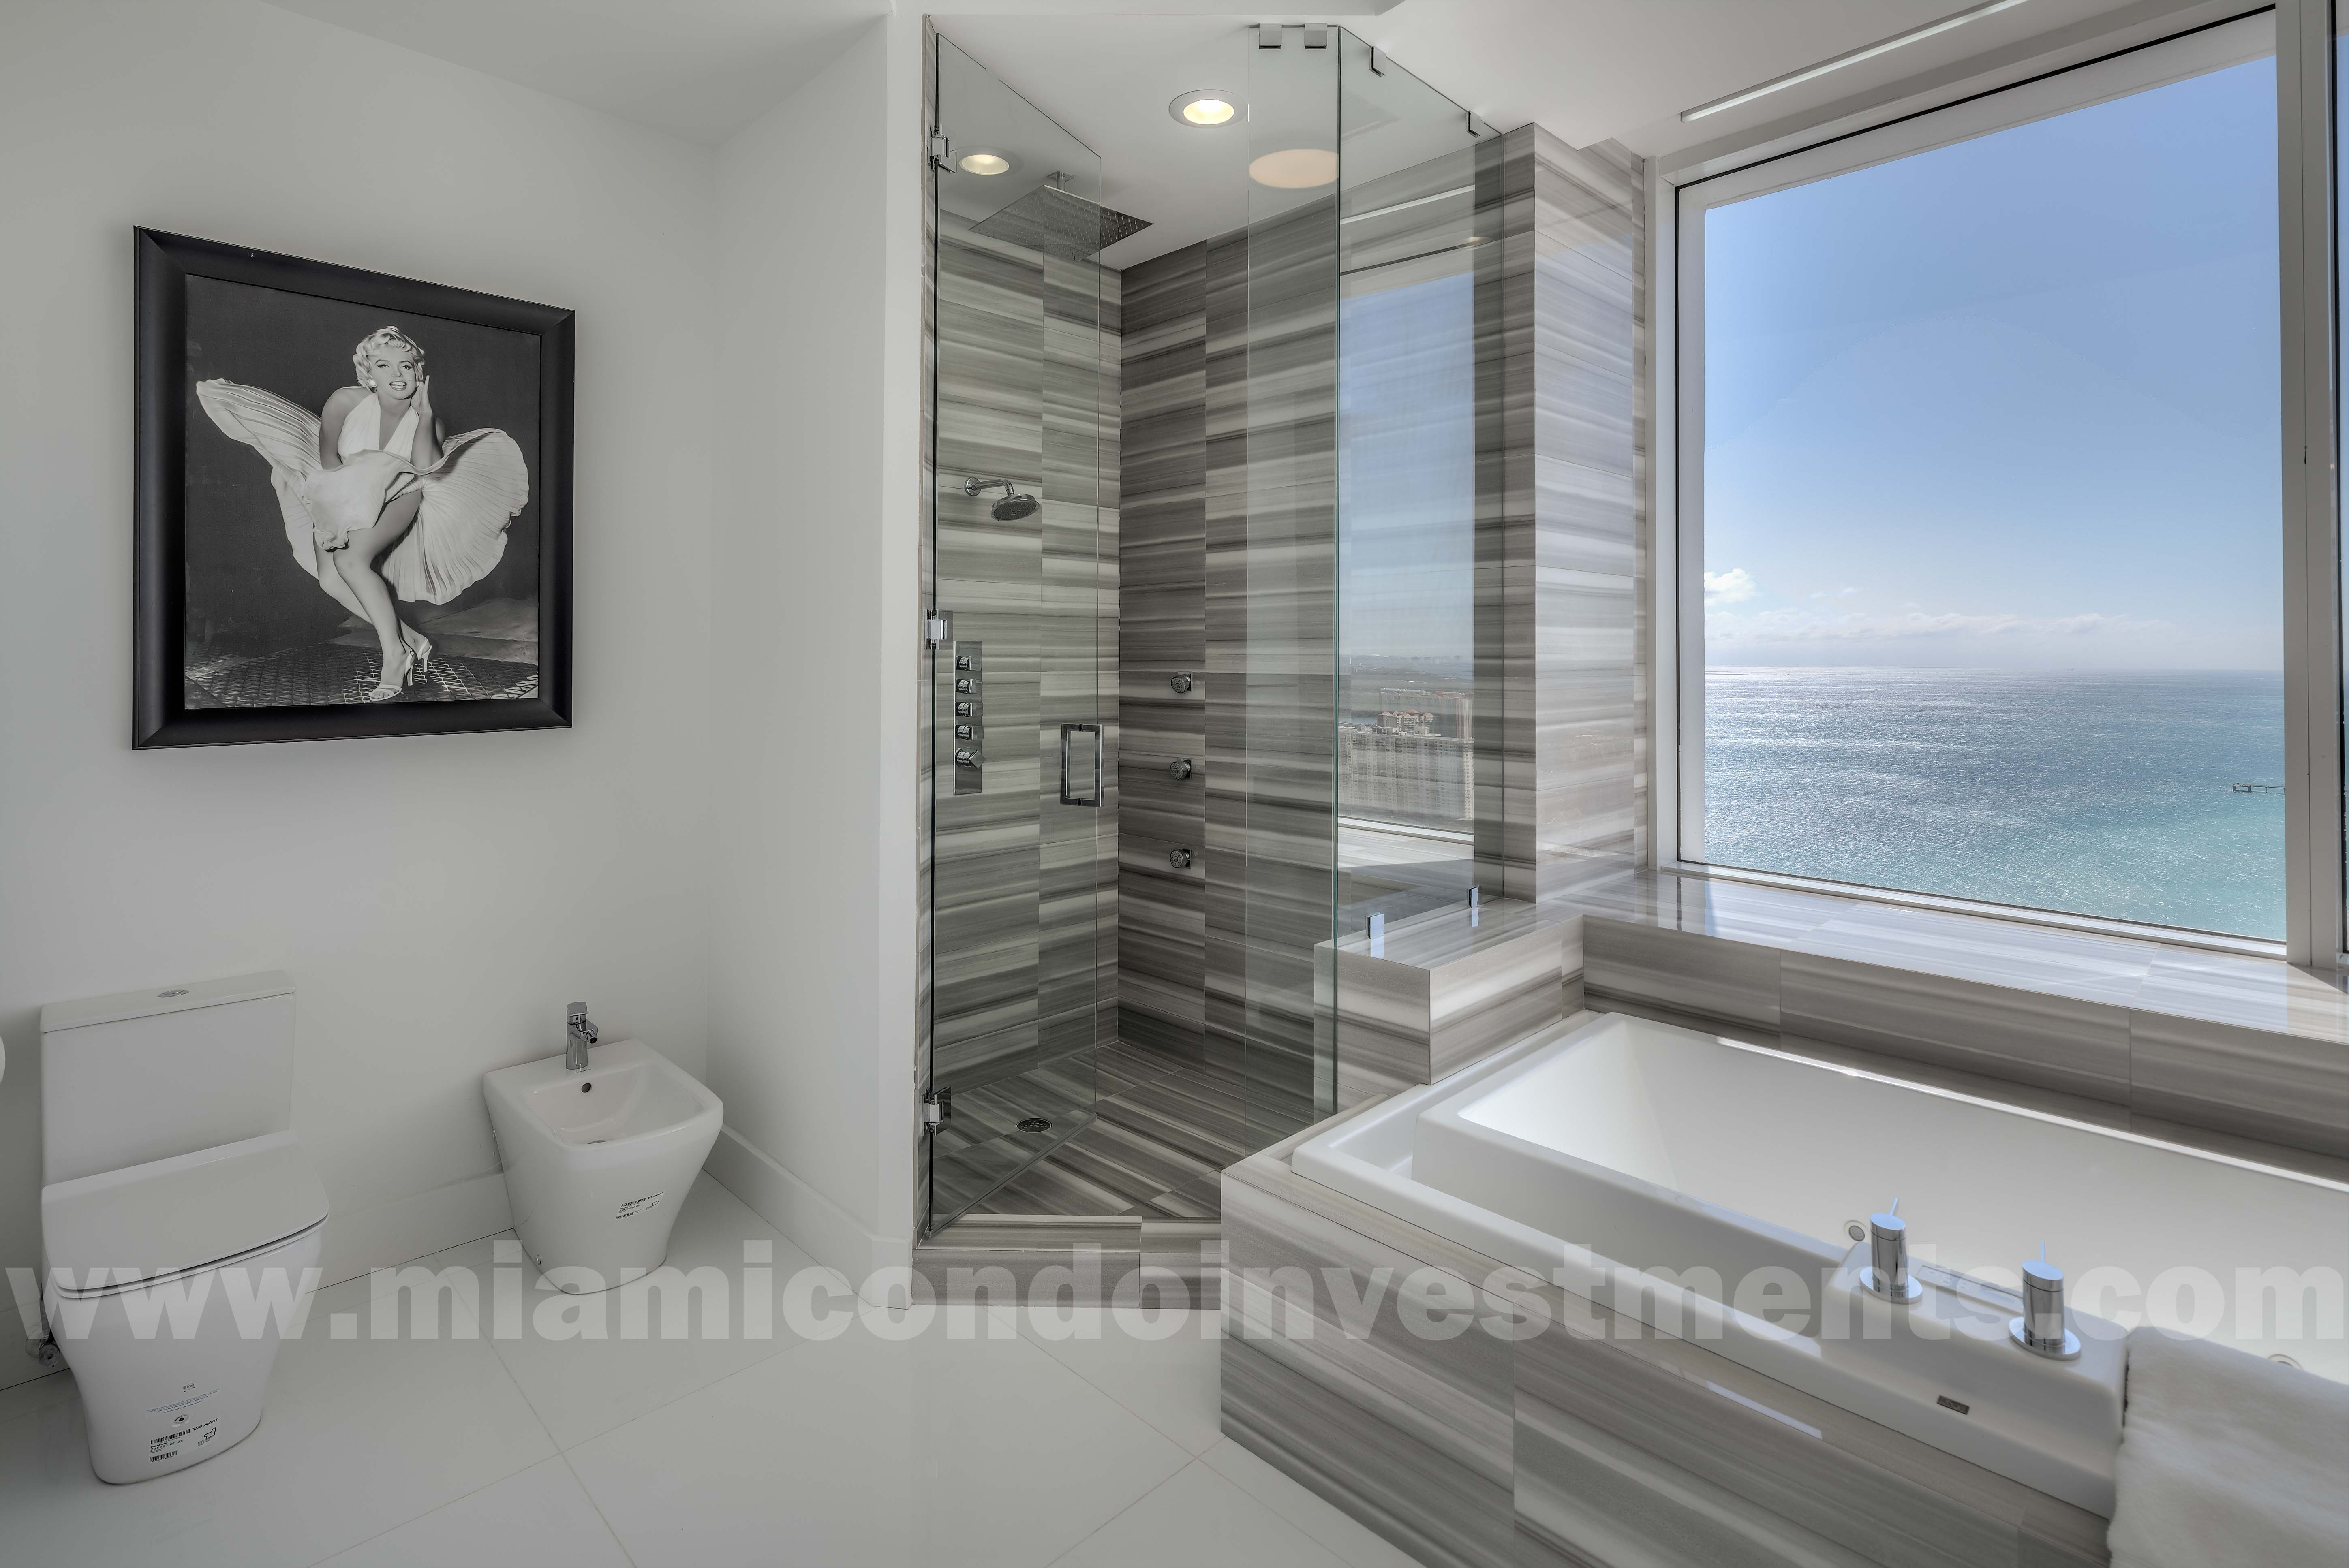 master bathroom with Jacuzzi tub, glass-enclosed shower, bidet, and toilet